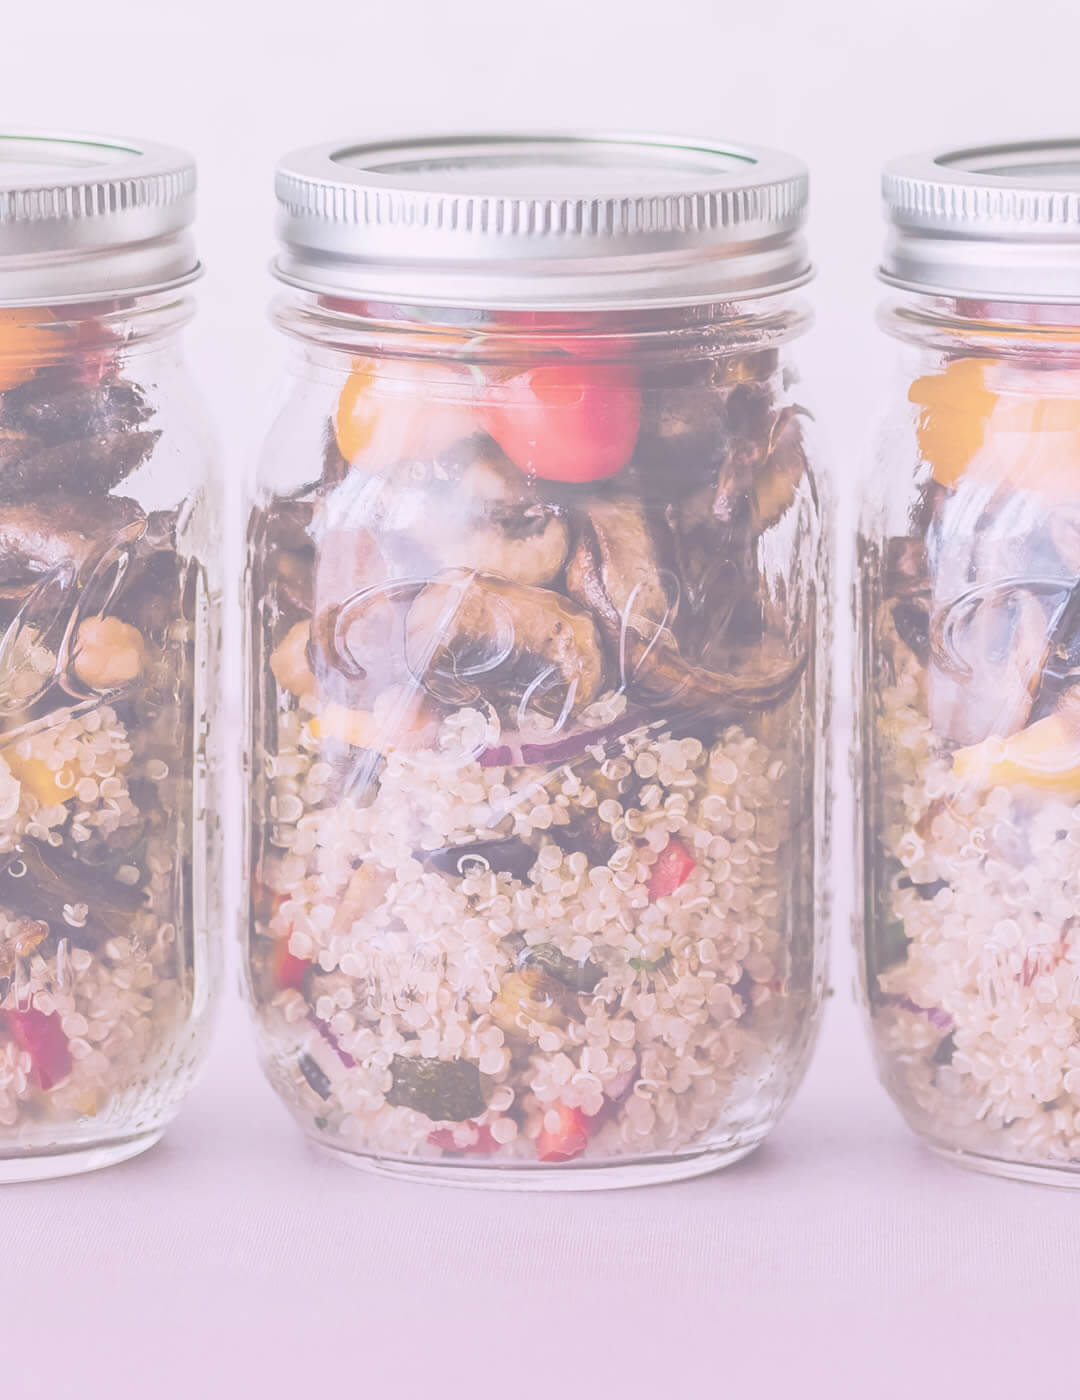 quinoa salad in a jar as one of the best foods for mental health